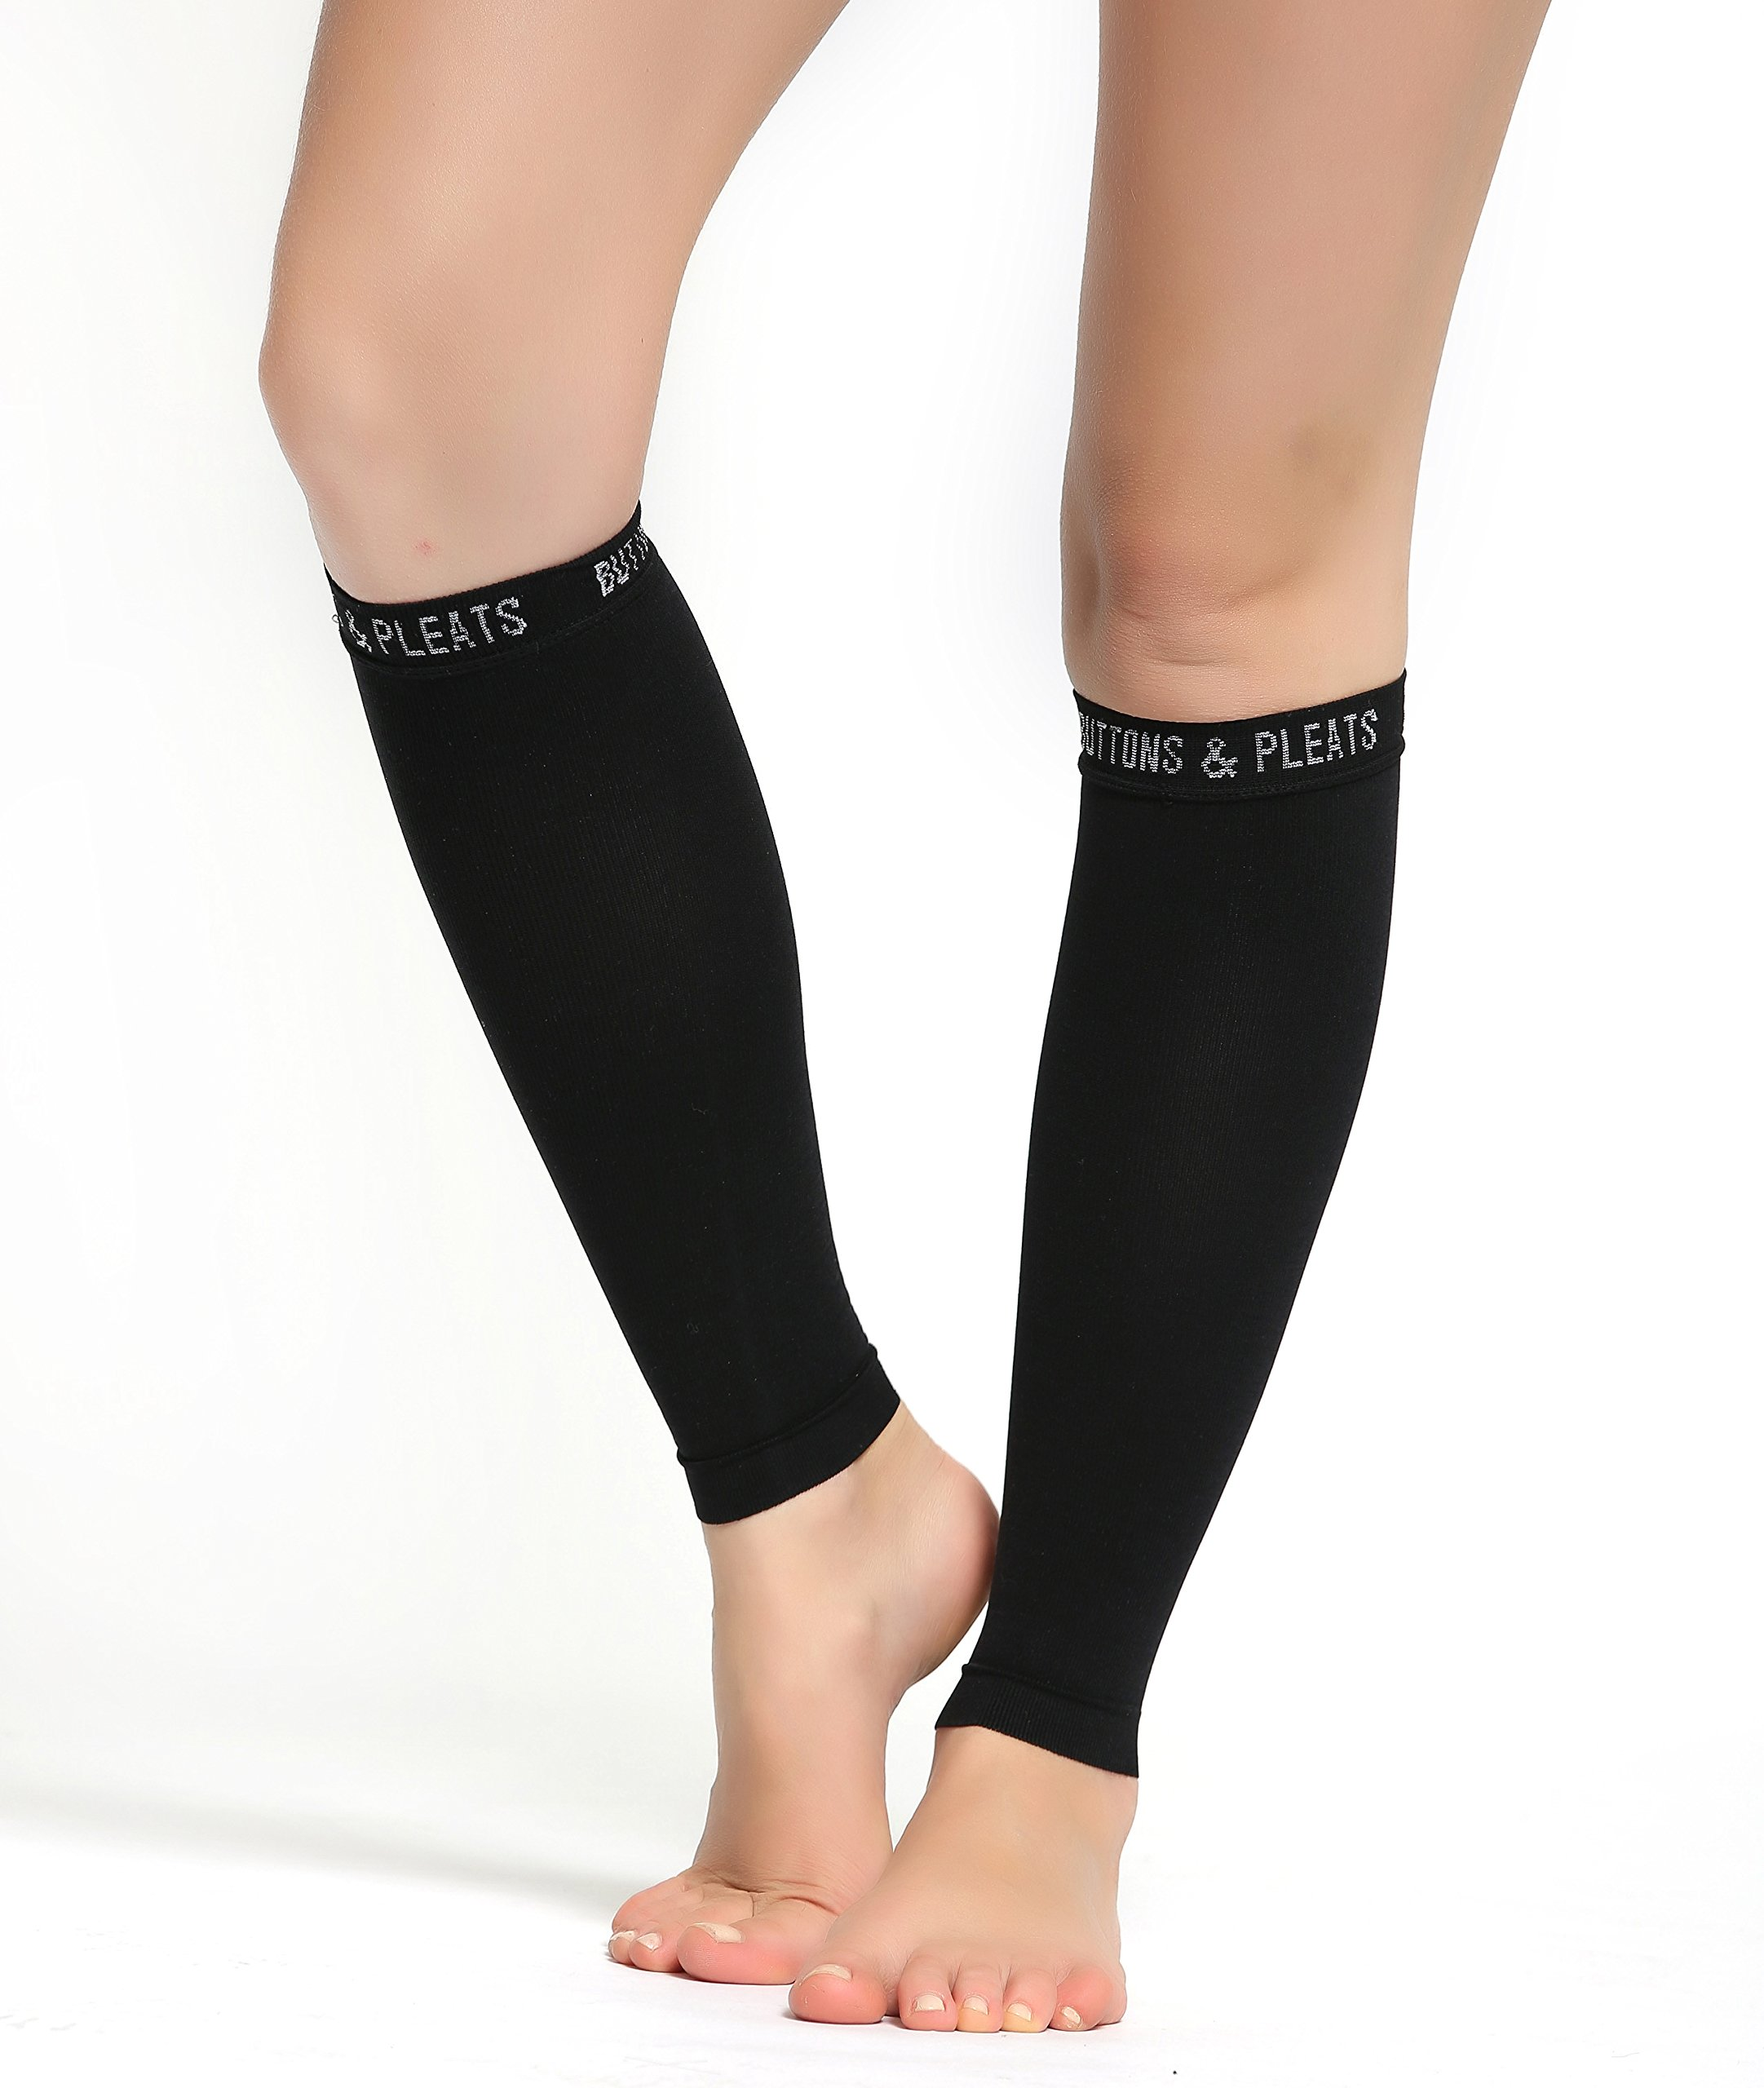 Buttons & Pleats Calf Compression Sleeve for Women & Men - Footless Leg Sleeves Socks - Boosts Circulation - Reduces Fatigue - Eases Shin Splints 1 Pair Black M/L